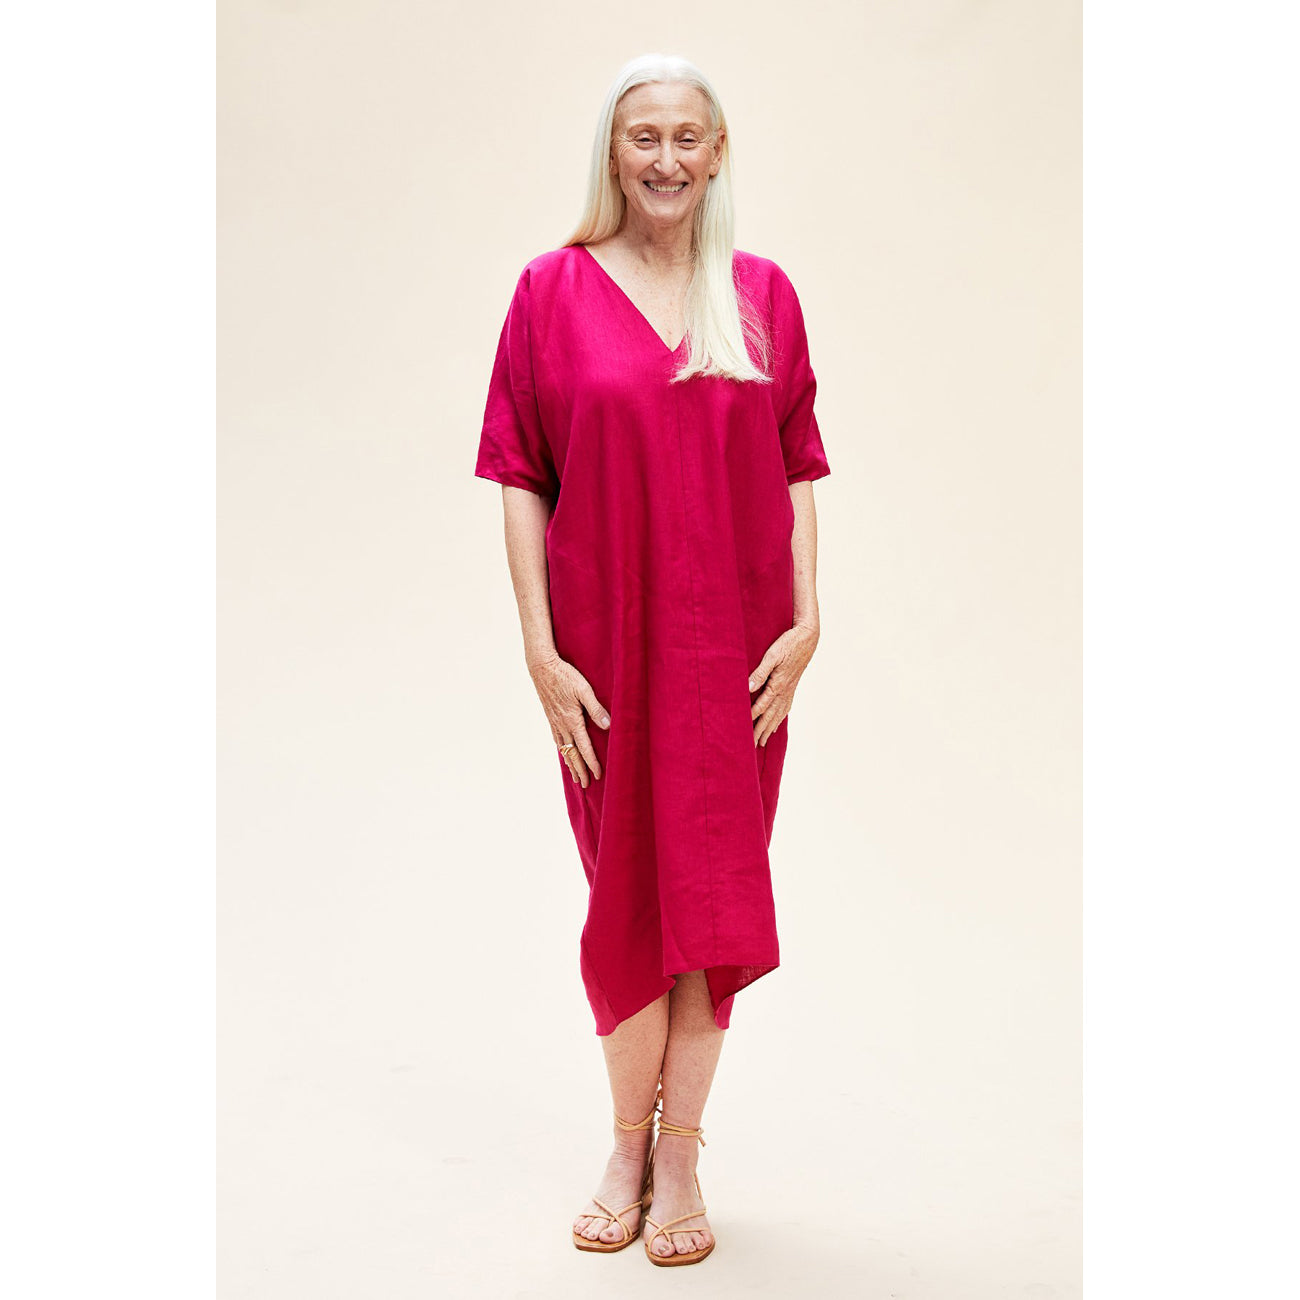 patmos dress in bougainvillea, sea